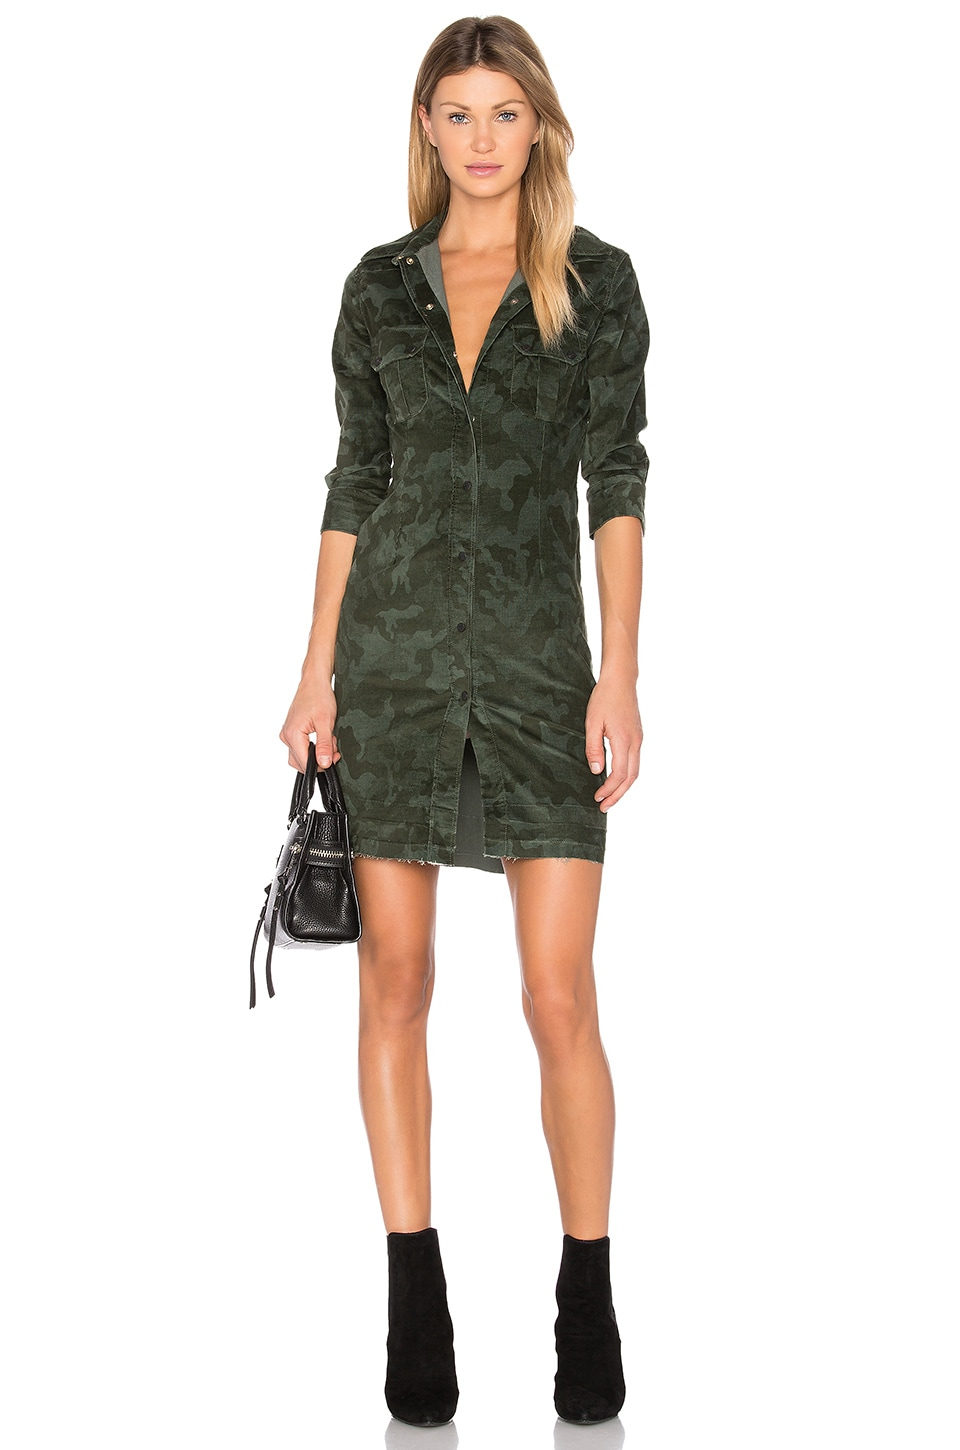 Button Up Mini Dress by Etienne Marcel